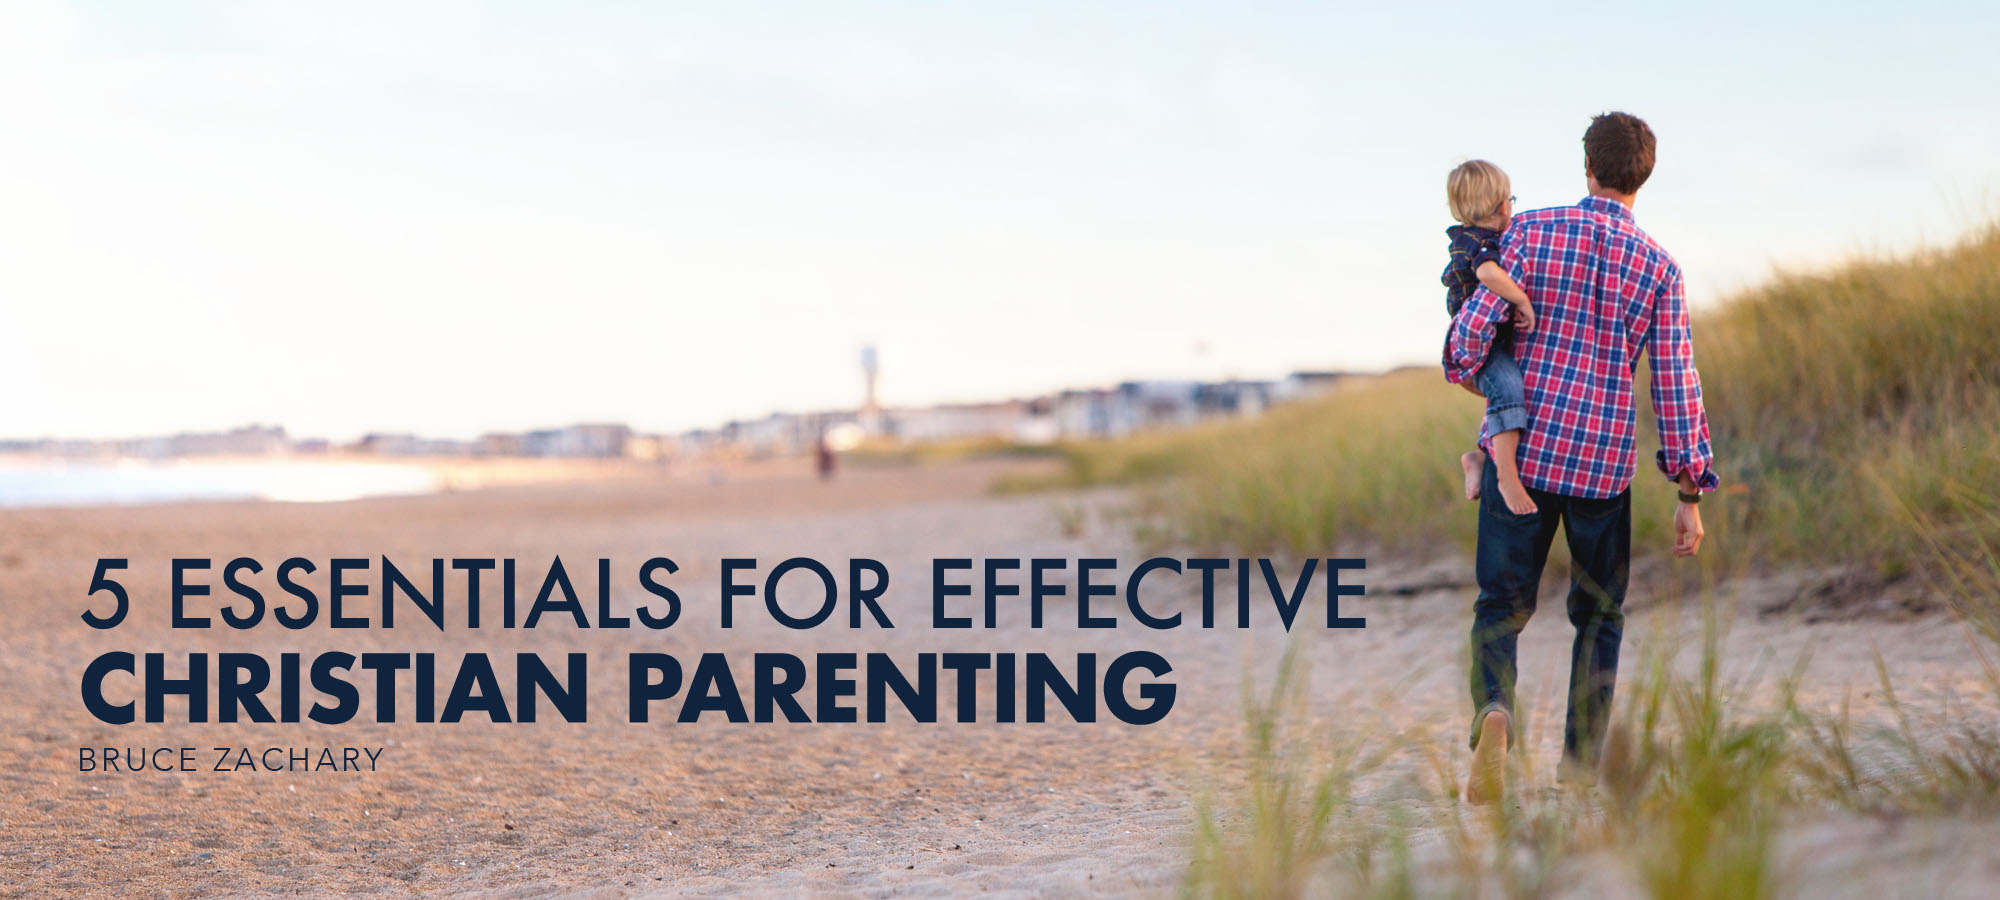 5 Essentials for Effective Christian Parenting